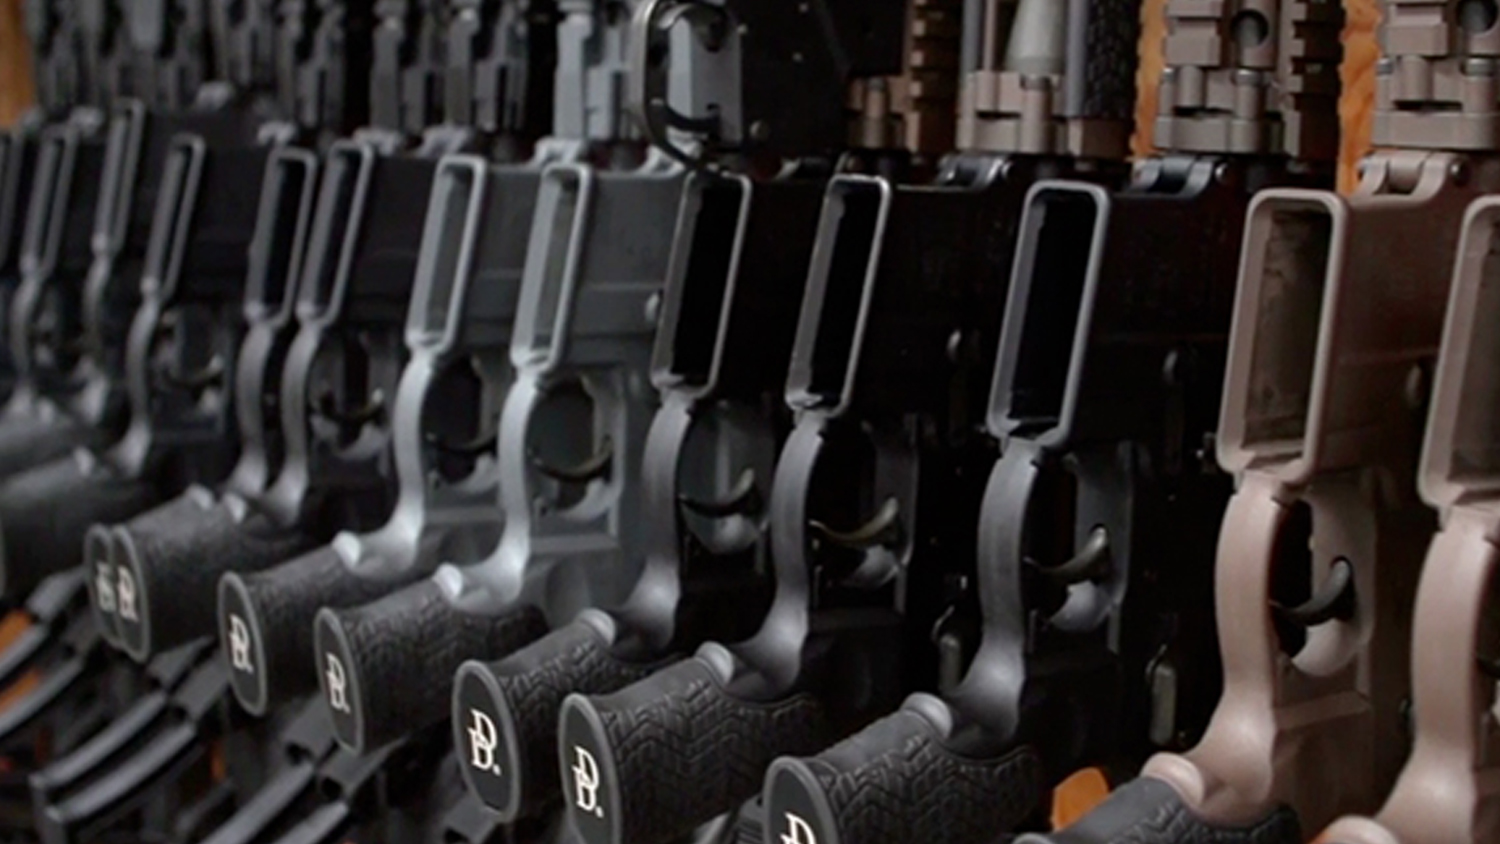 Firearms, Freedom and Family: The Values That Drive Daniel Defense